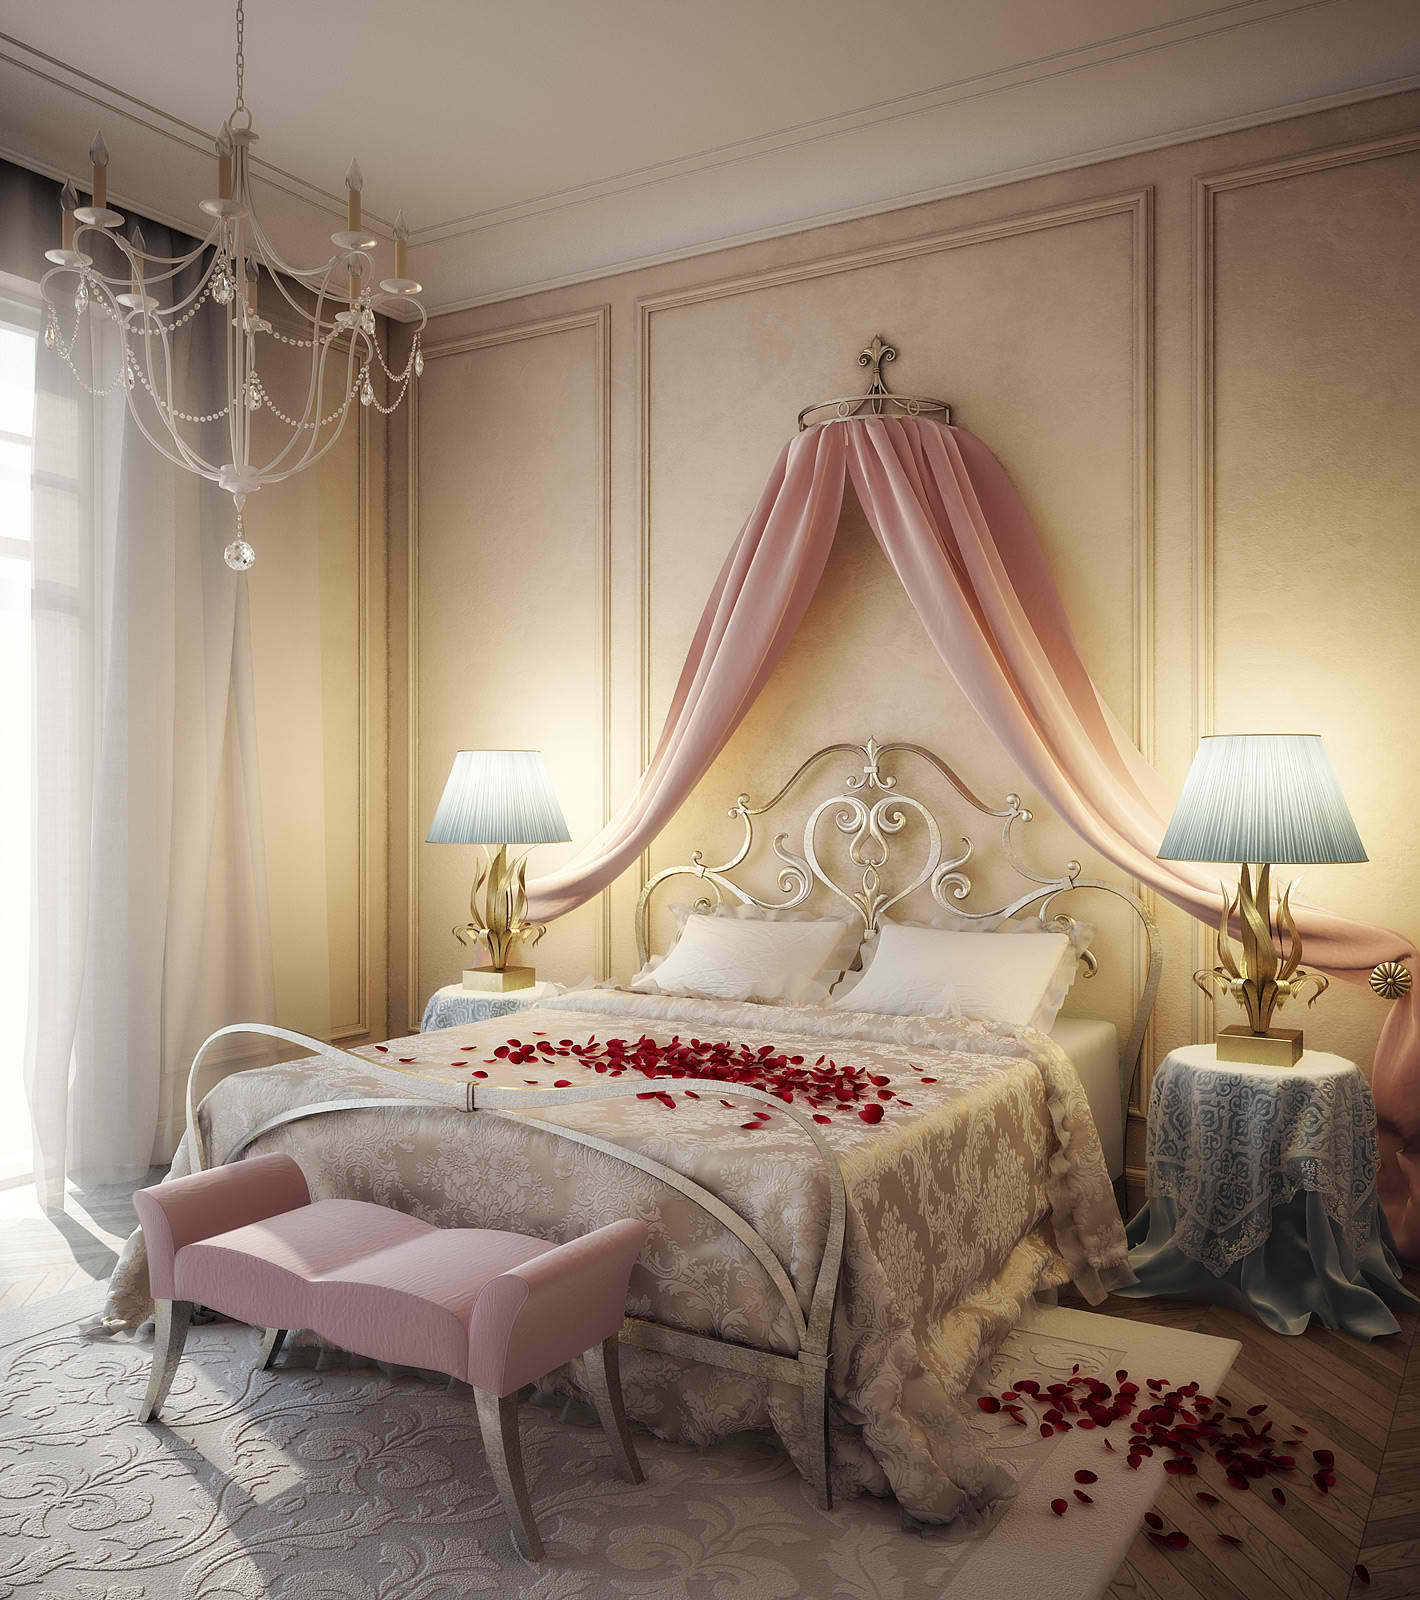 20 romantic bedroom ideas decoholic for Ideas for the bedroom